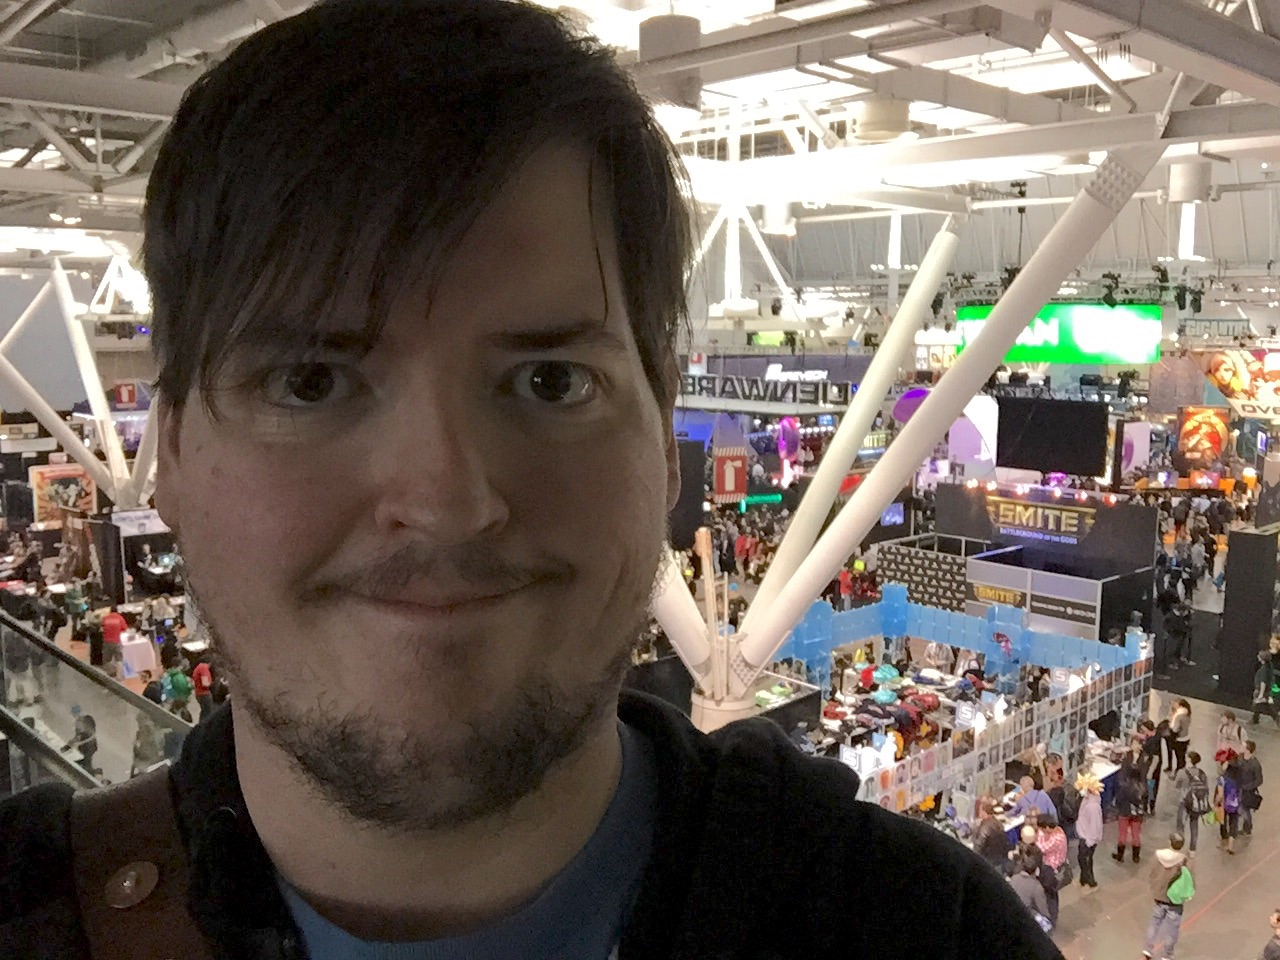 It's a huge show, there is only about third of it behind me